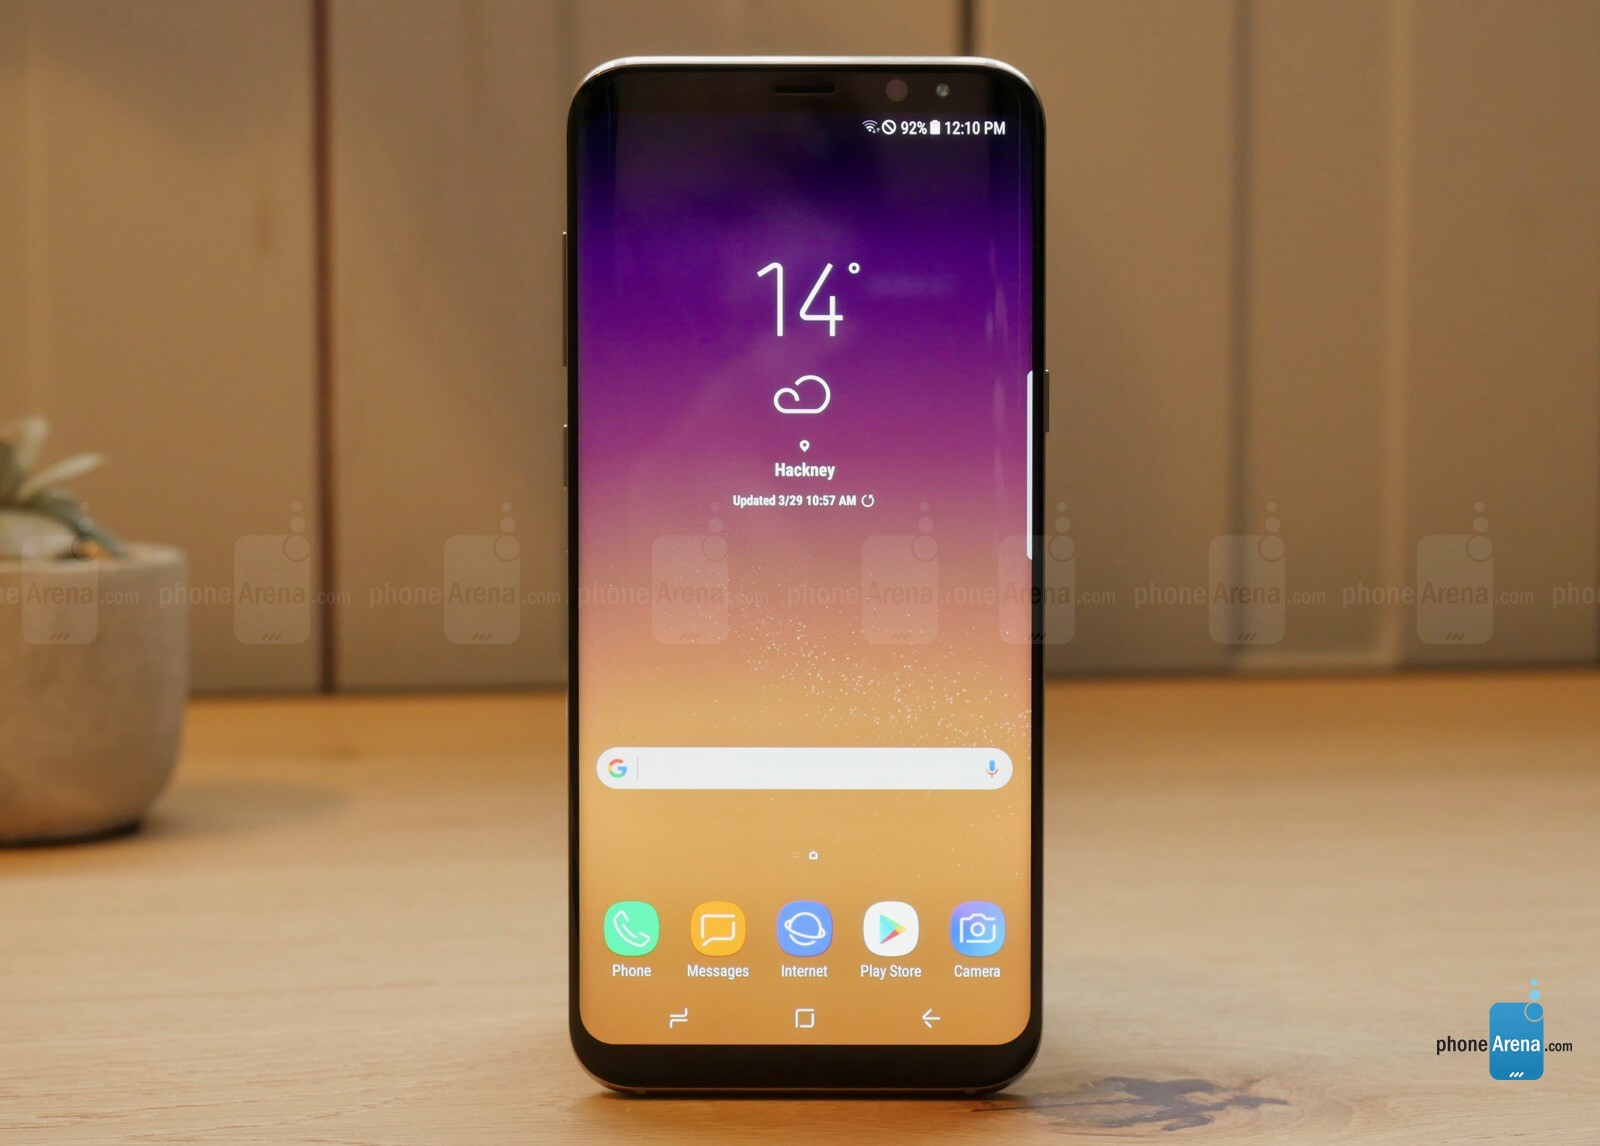 511eac374 Samsung running a BOGO deal with T-Mobile - buy one Galaxy S8 or S8+ ...